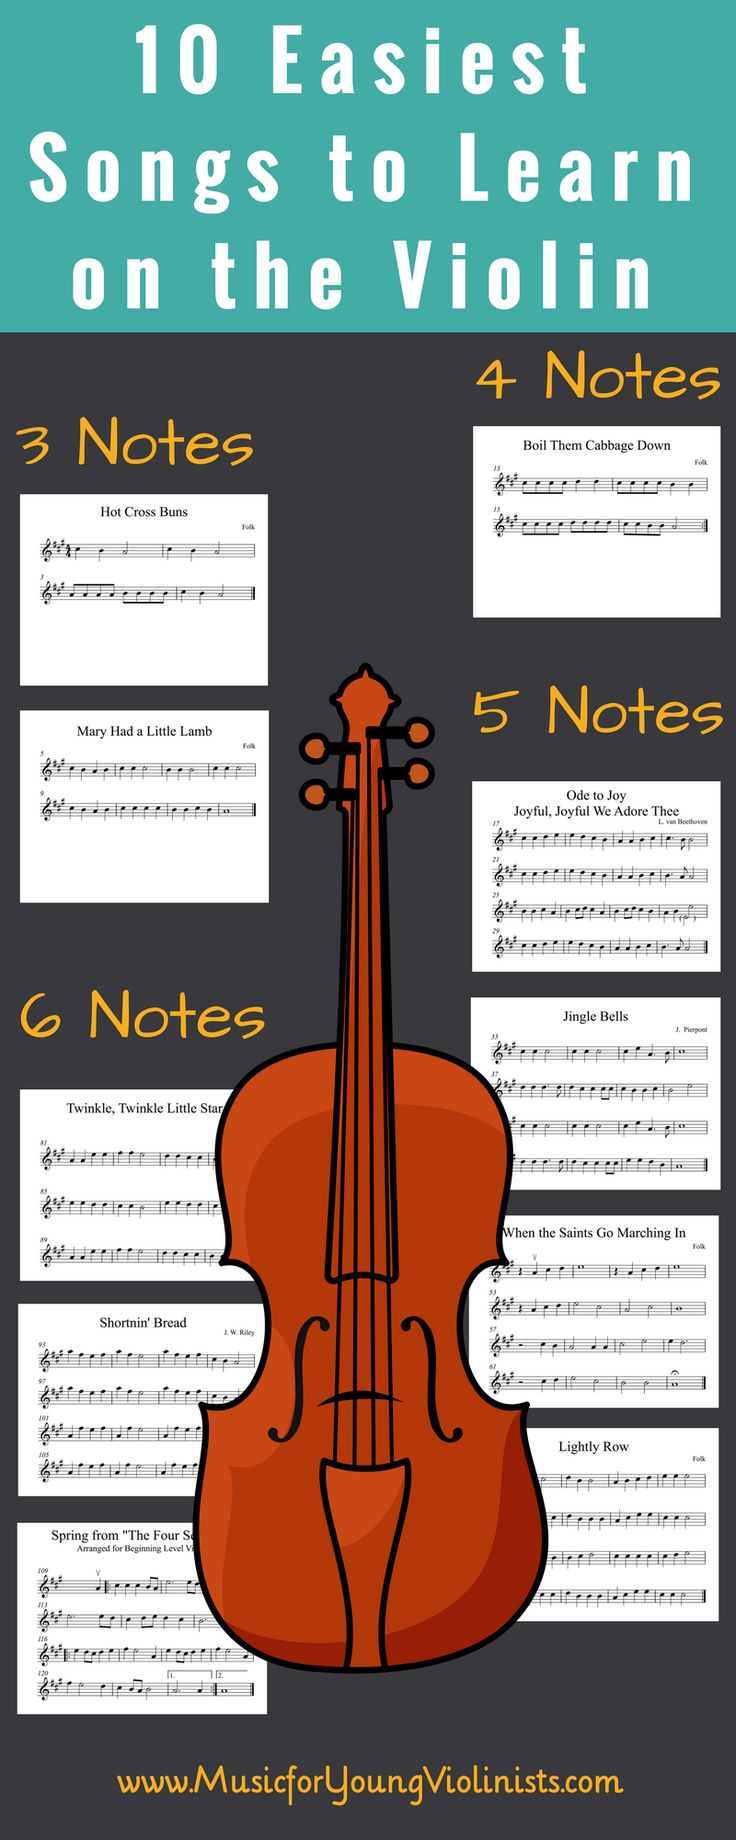 Best 25 list of guitar chords ideas on pinterest cords of easy violin songs here is a list of the 10 easiest songs to learn to hexwebz Image collections